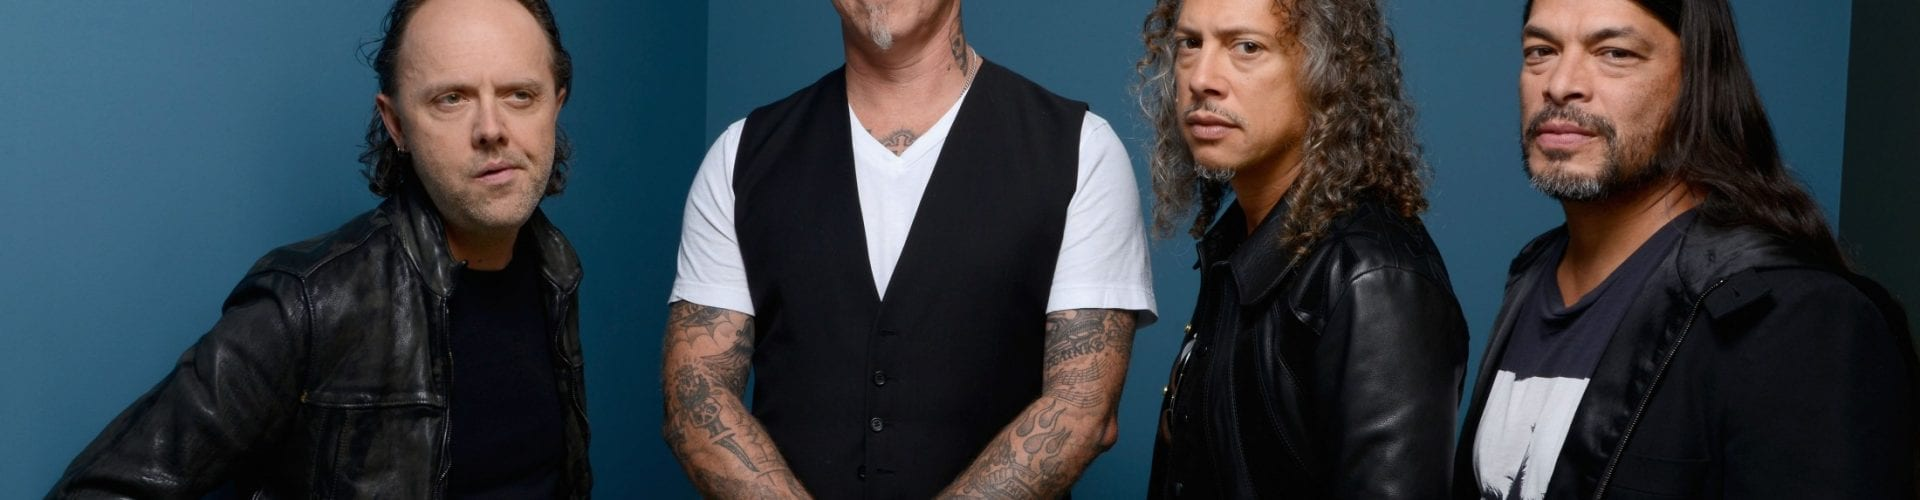 Metallica To Play Charity Acoustic Concert This November